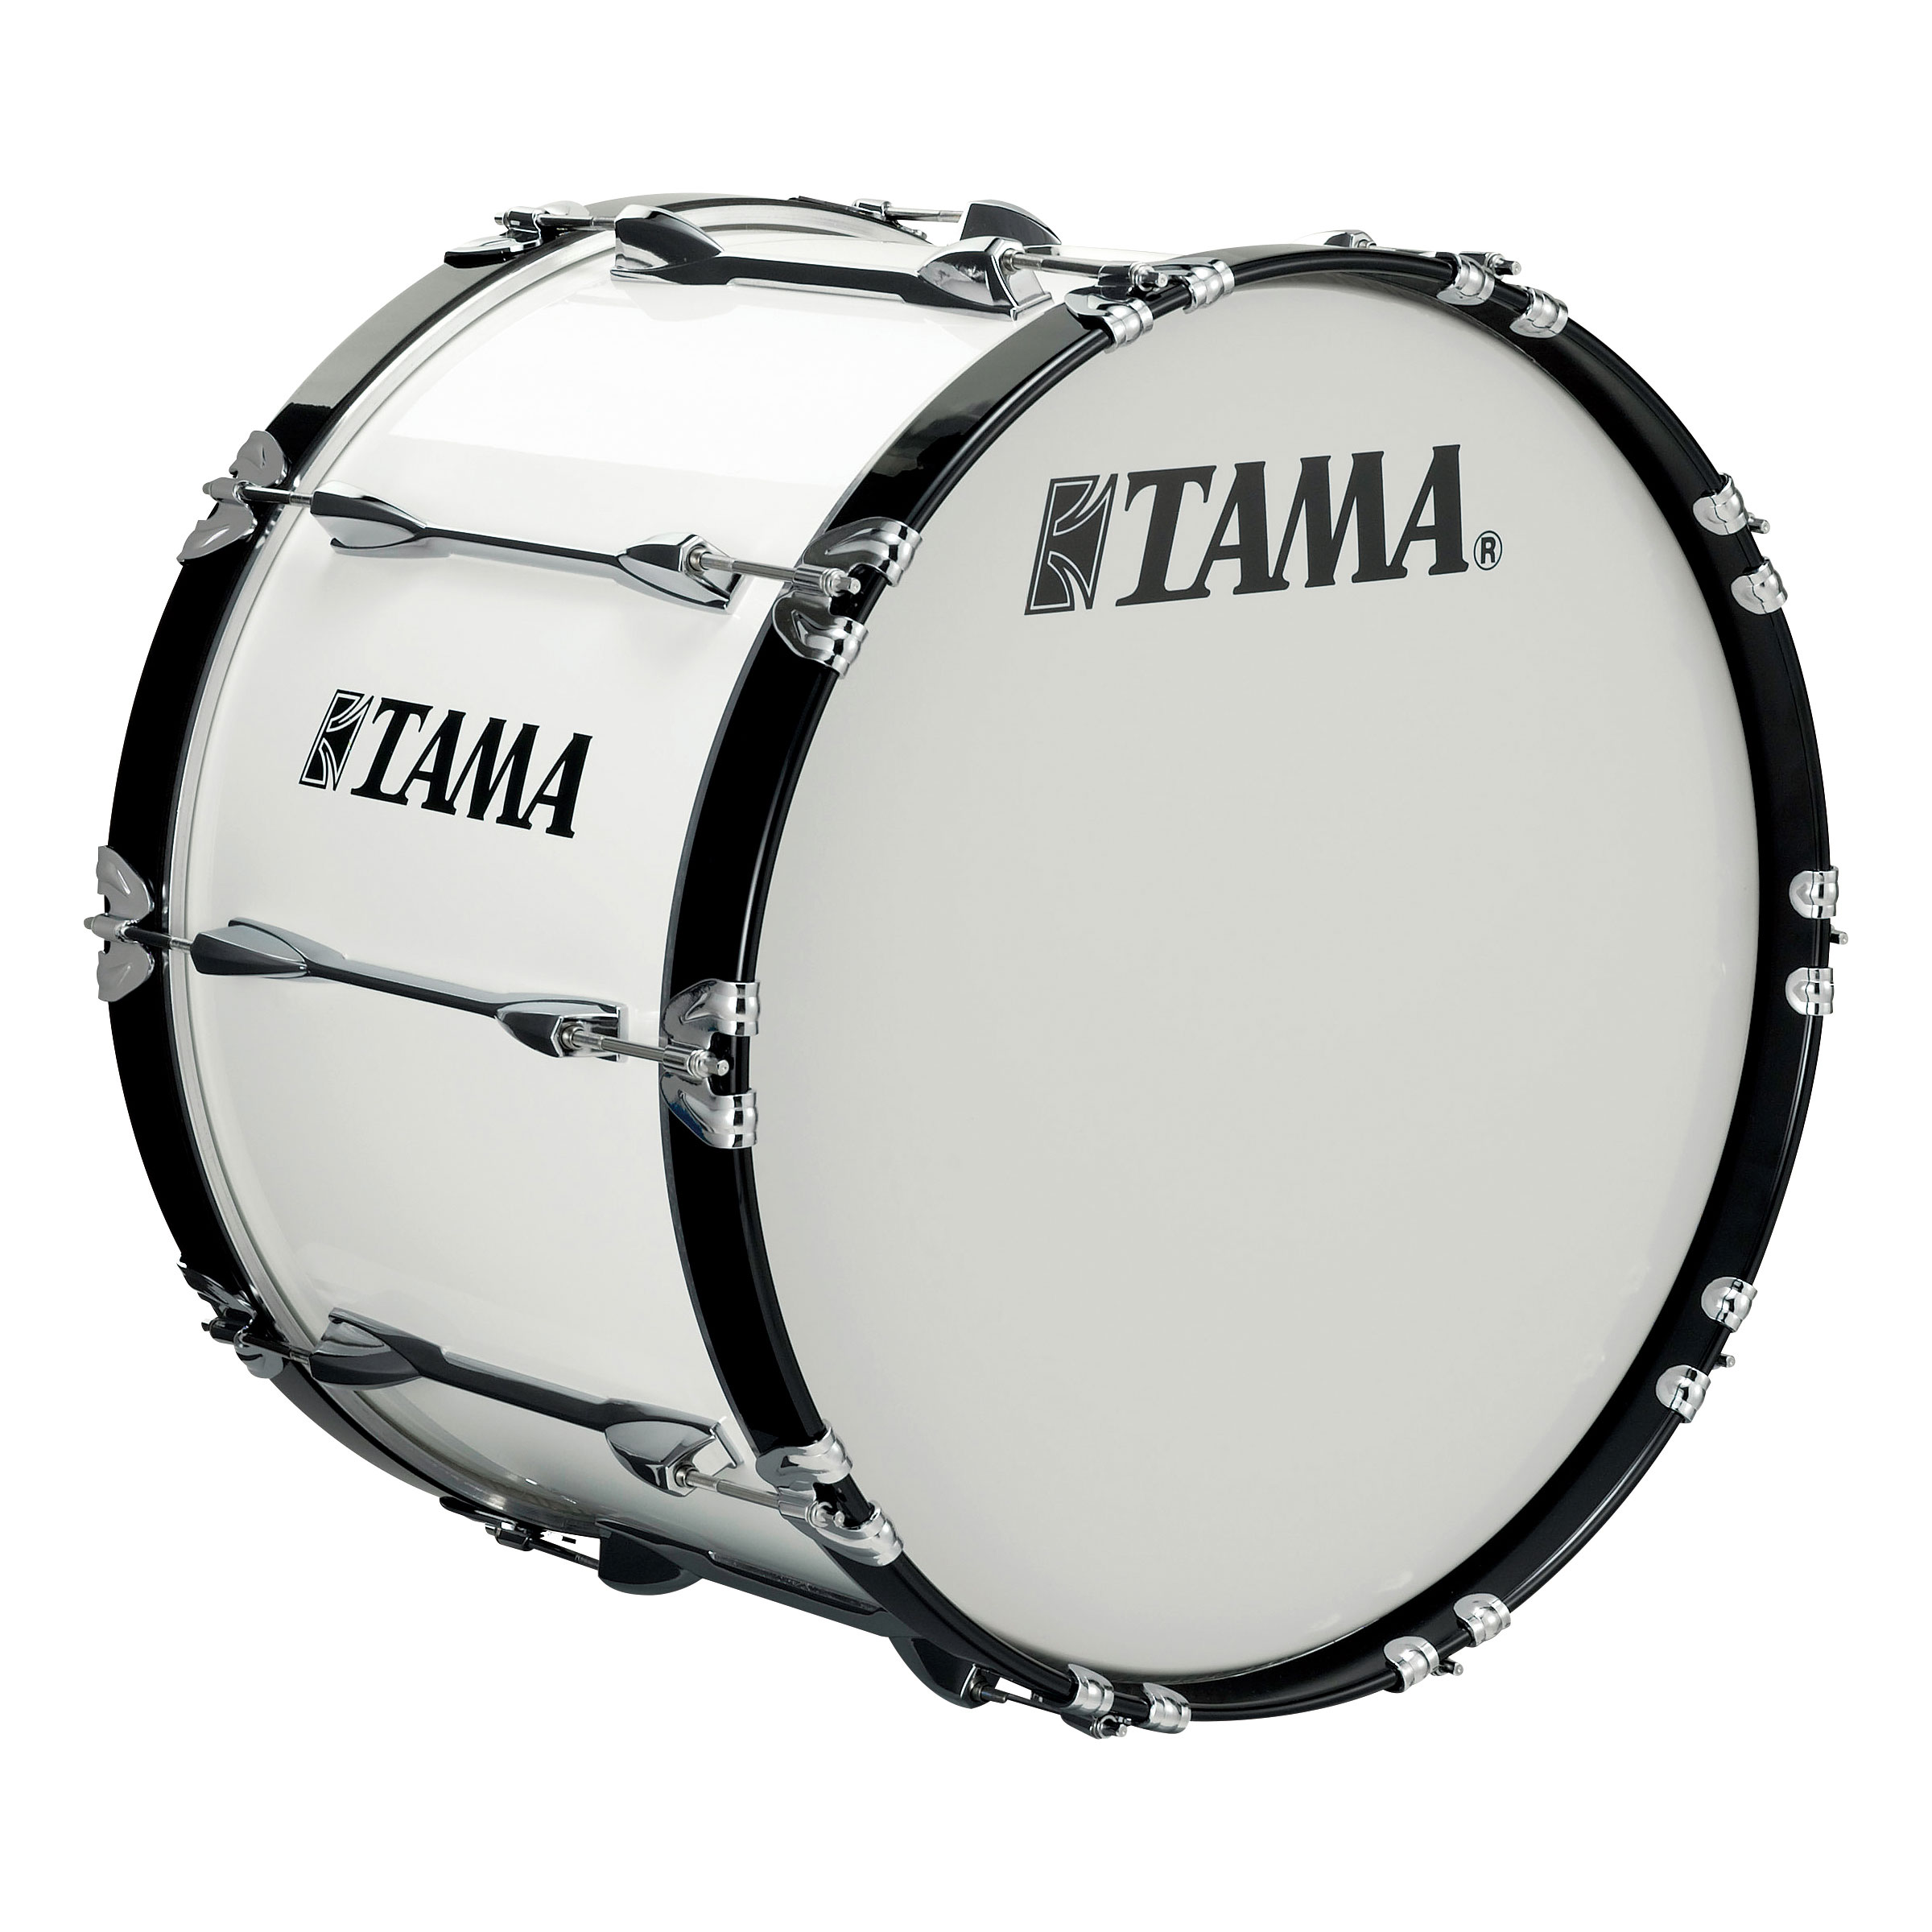 "Tama 22"" StarLight Marching Bass Drum in Sugar White Wrap"